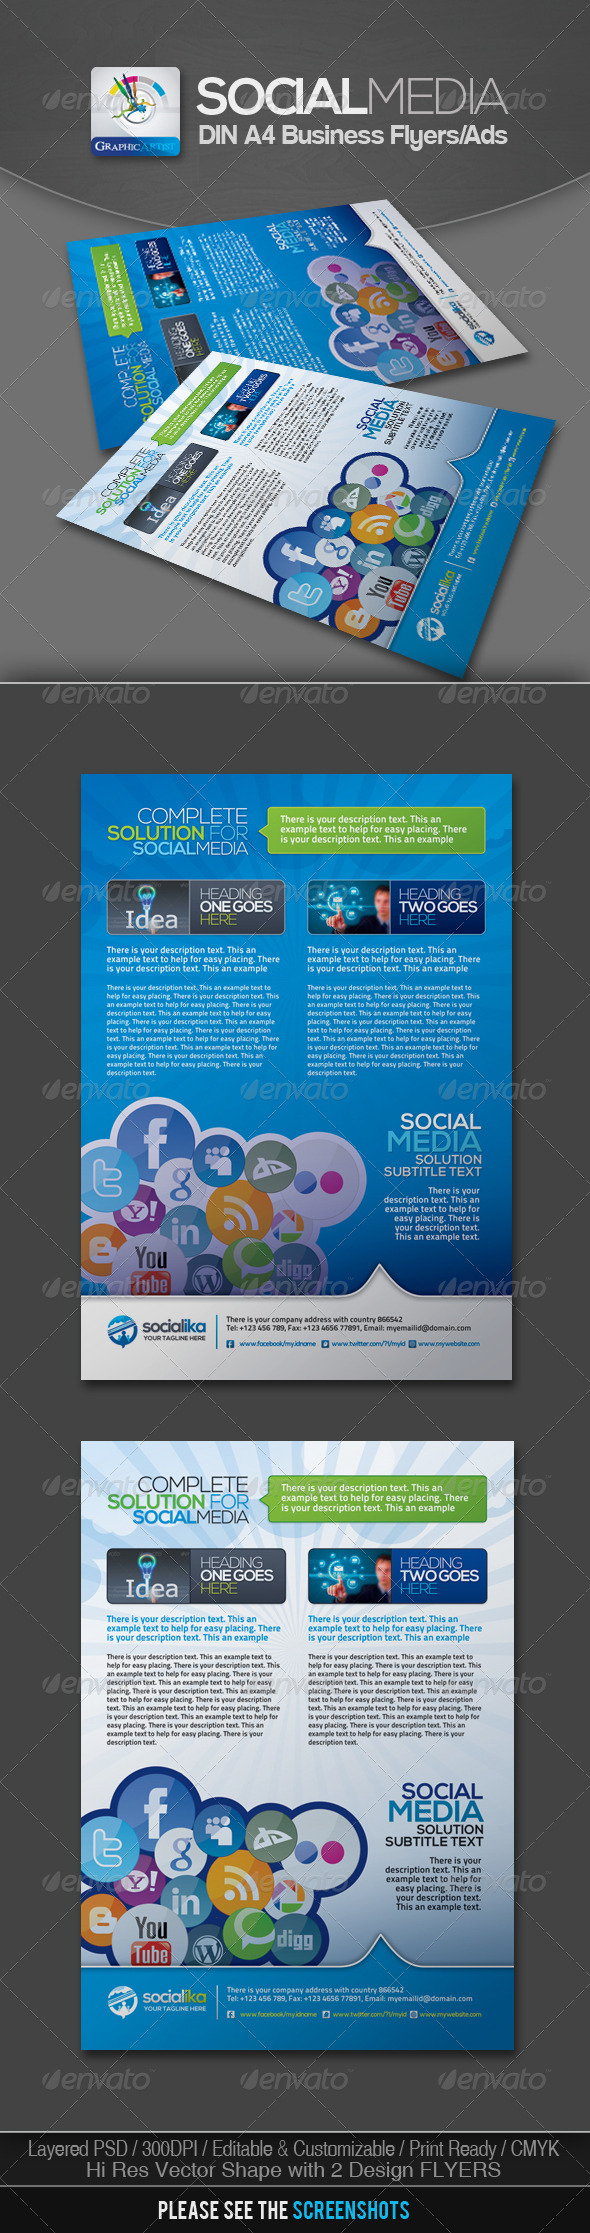 GraphicRiver Social Media Business Flyers v.2 3023822